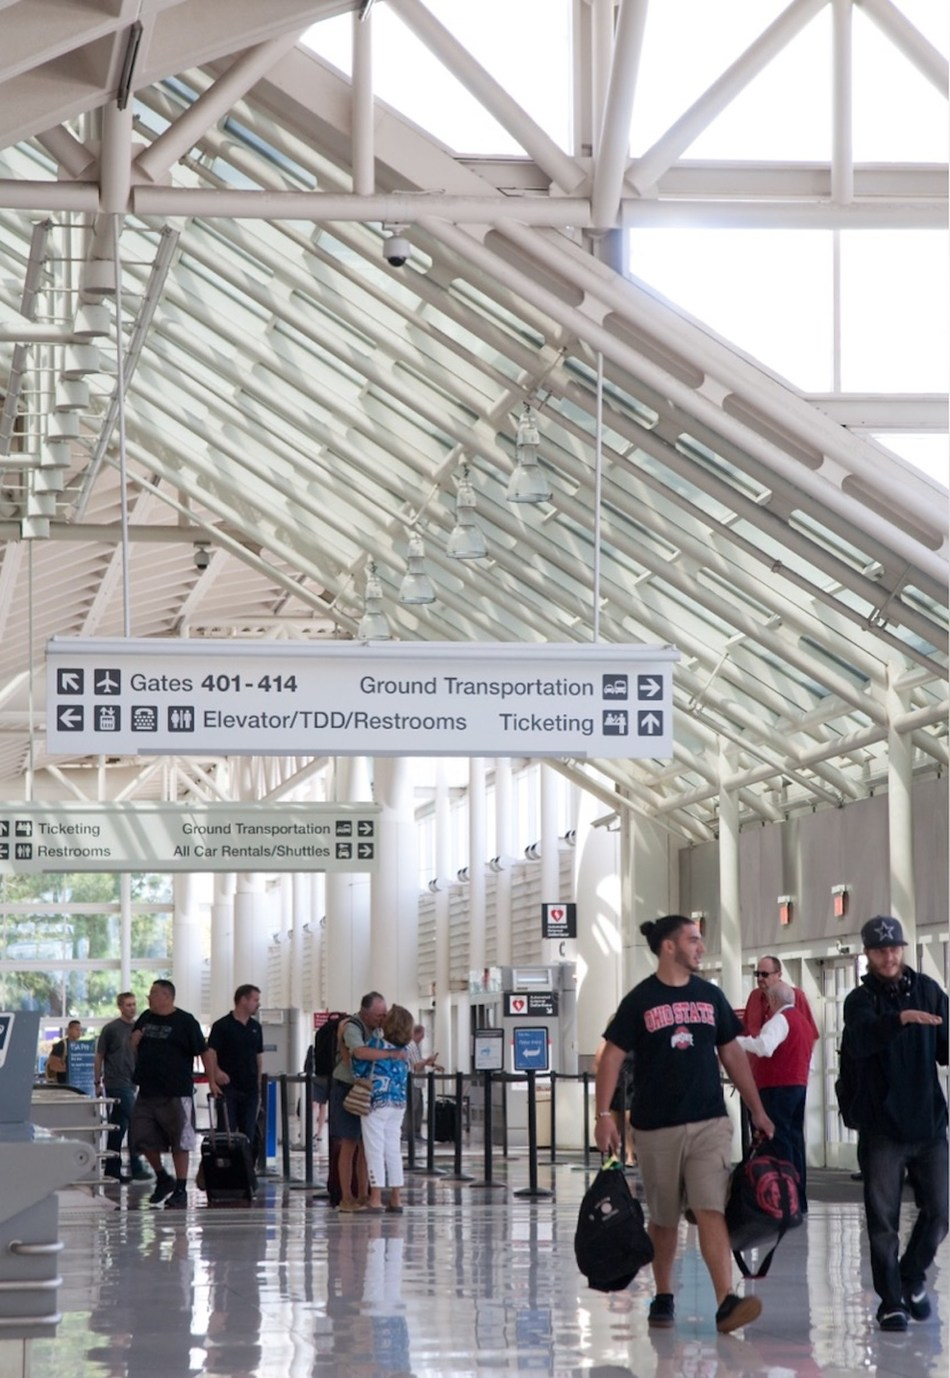 S&P Global Ratings has revised its outlook of the Ontario International Airport Authority to positive from stable and affirmed its long-term rating of 'A-' for the Inland Empire airport's revenue bonds.